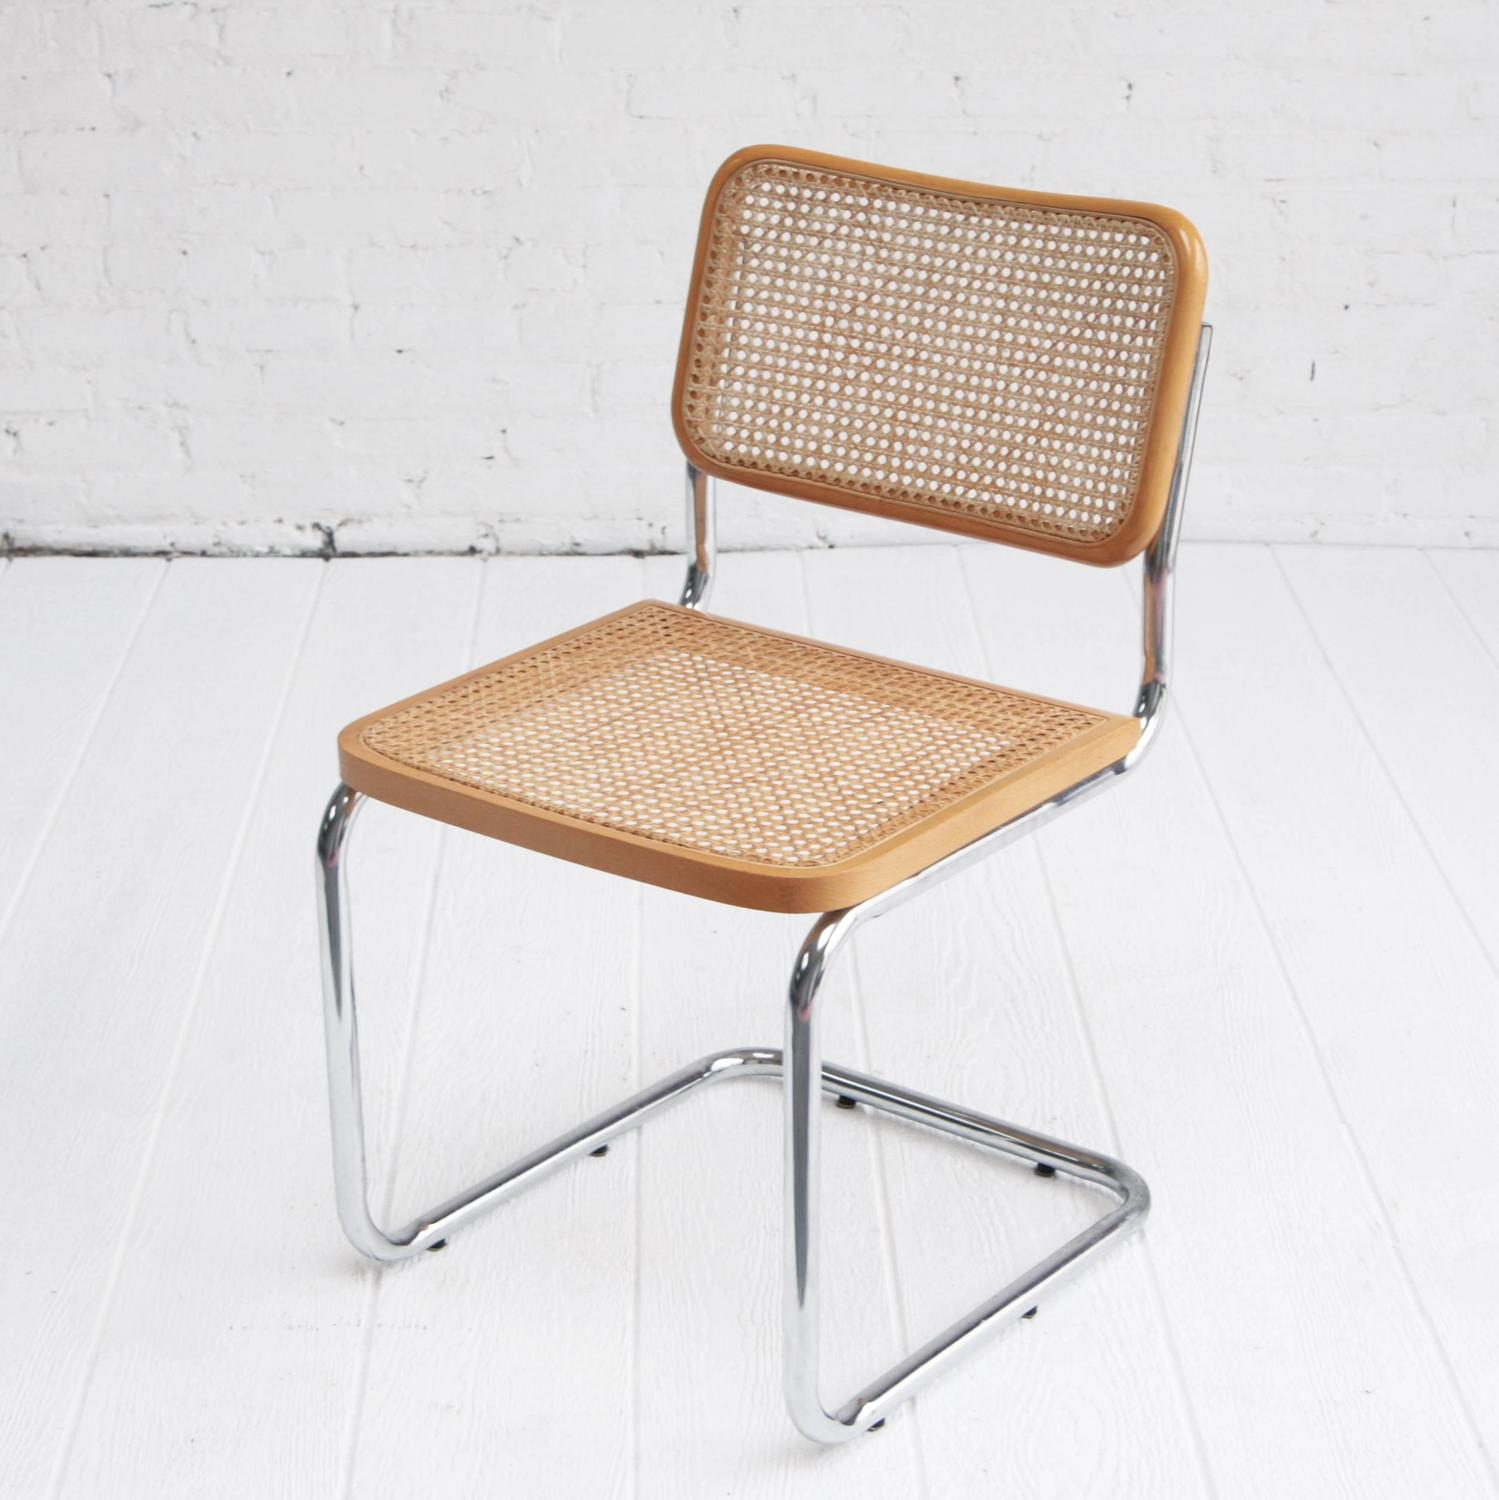 Used danish furniture uploaded by admin in modern furniture category - Download Marcel Breuer Cesca Chairs